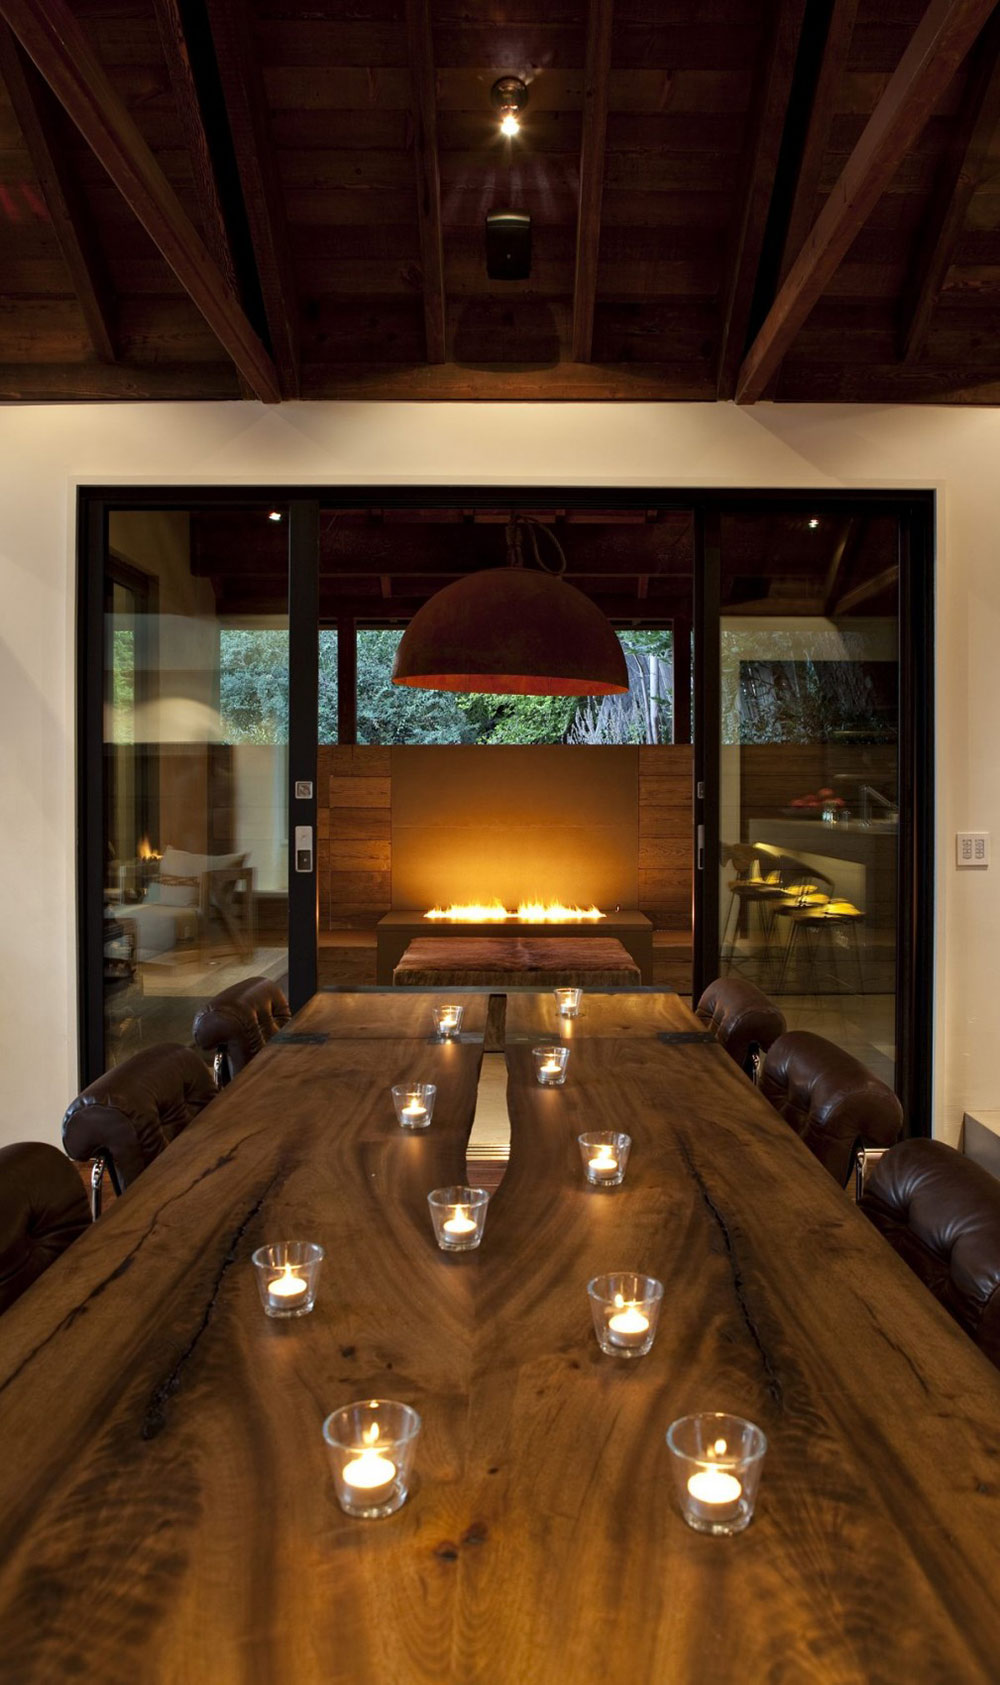 Dining Table, Contemporary Fireplace, Hillside House, California by SB Architects